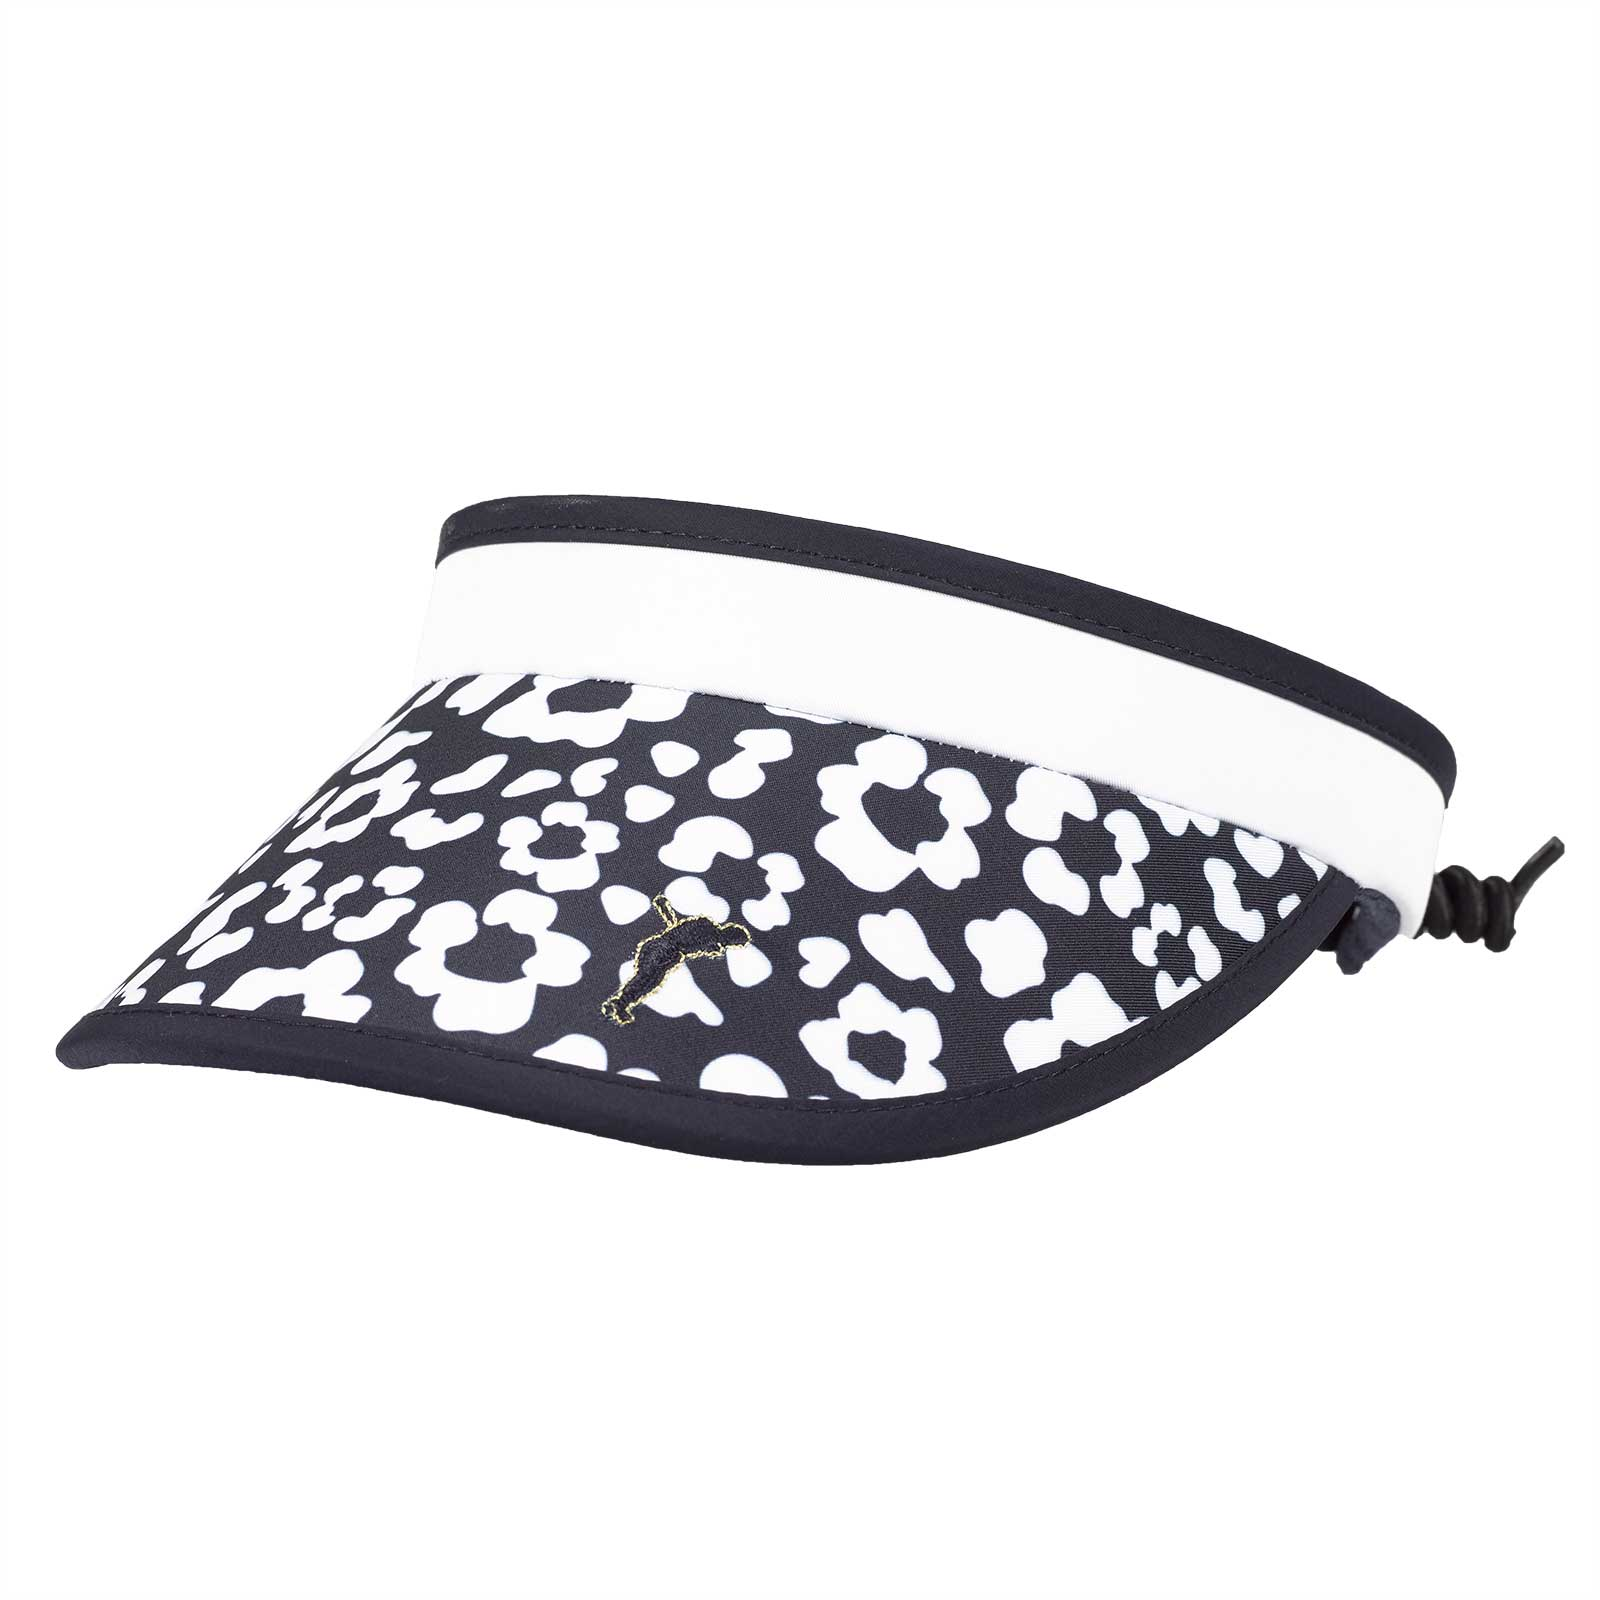 Ladies' cable visor with stylish floral design and sweatband